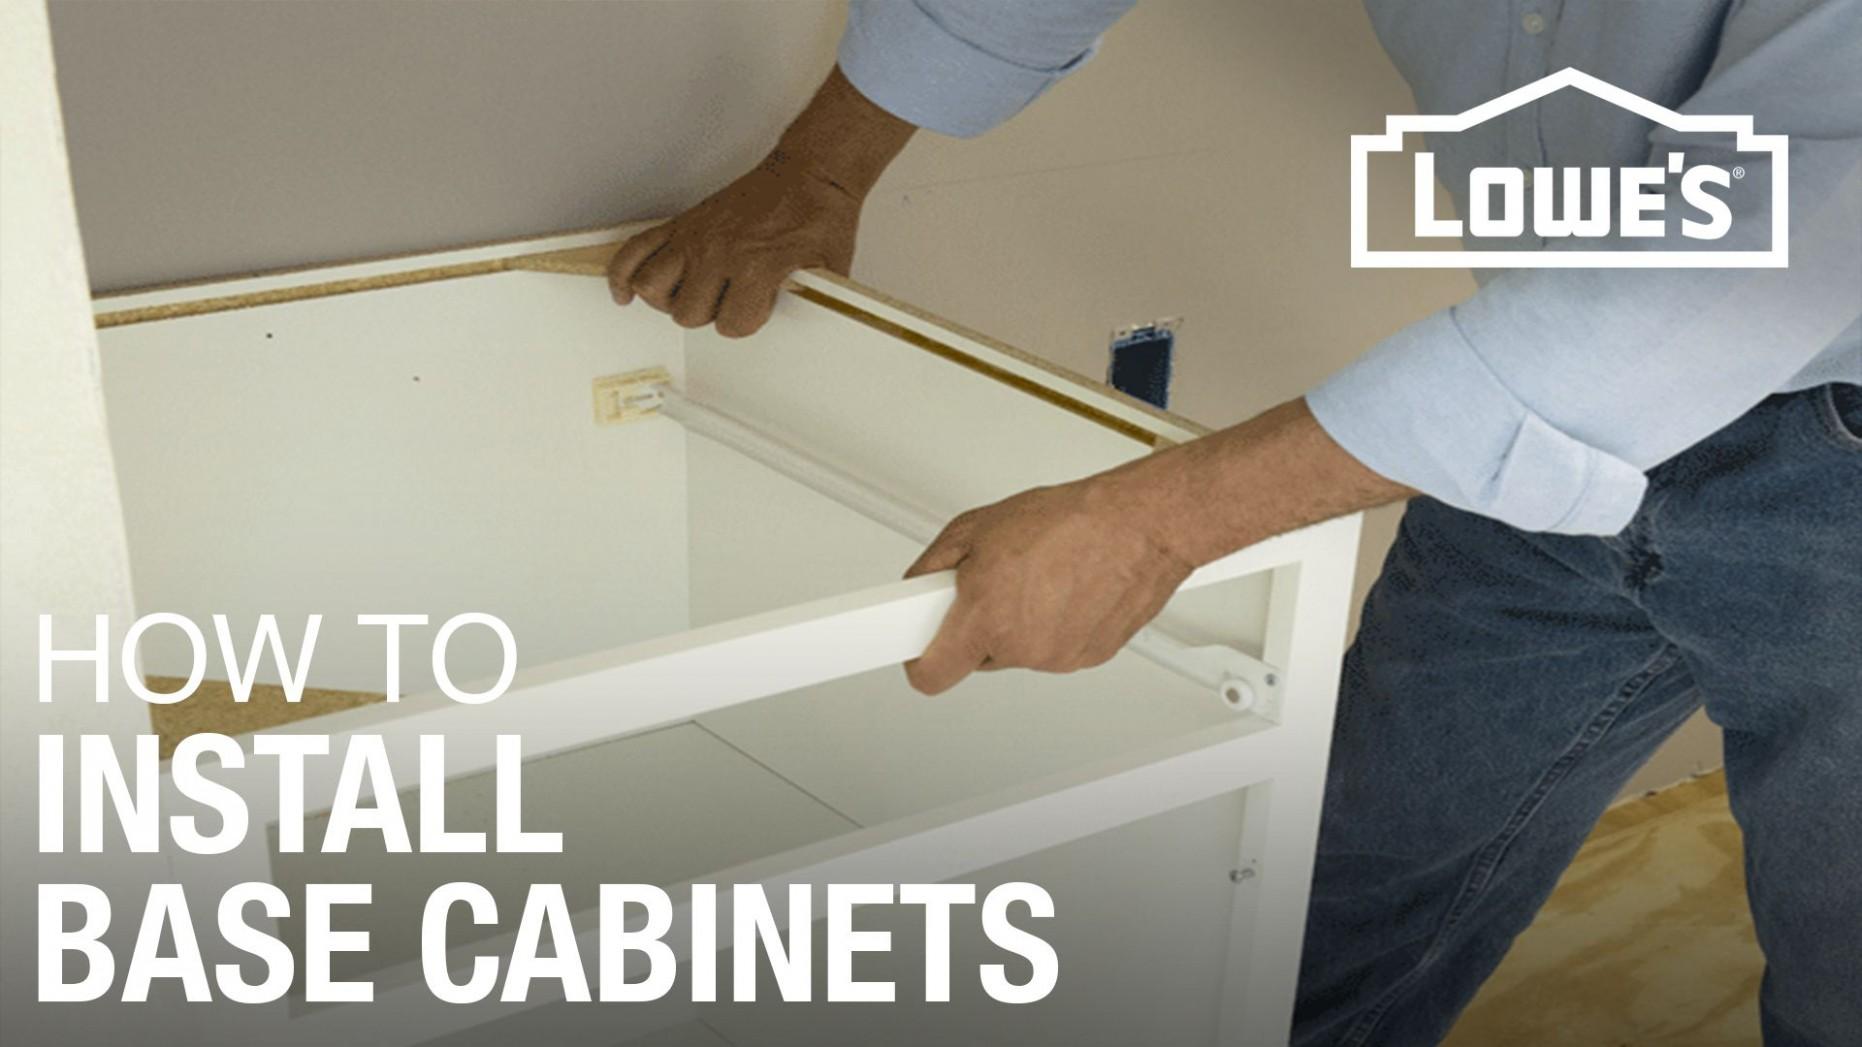 How to Install Base Cabinets - Lowes Kitchen Floor Cabinets